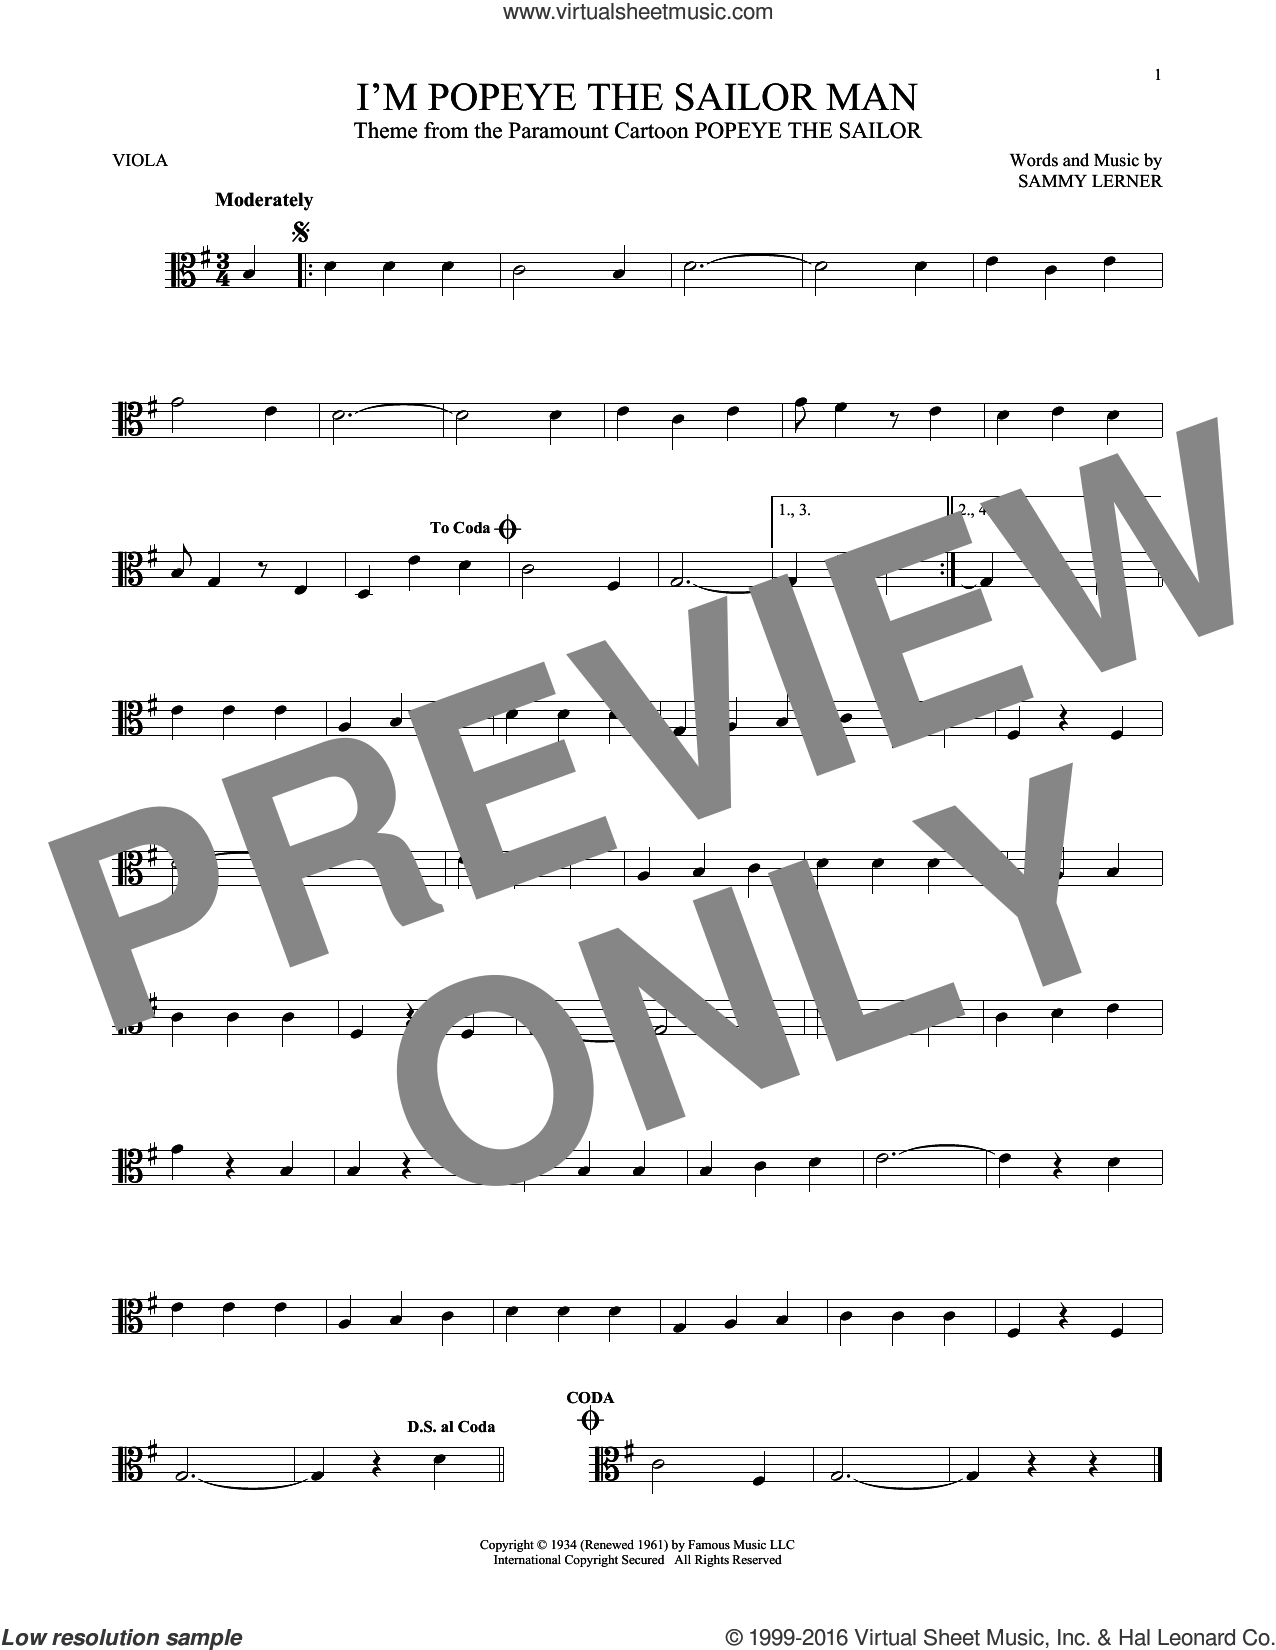 I'm Popeye The Sailor Man sheet music for viola solo by Sammy Lerner, intermediate skill level